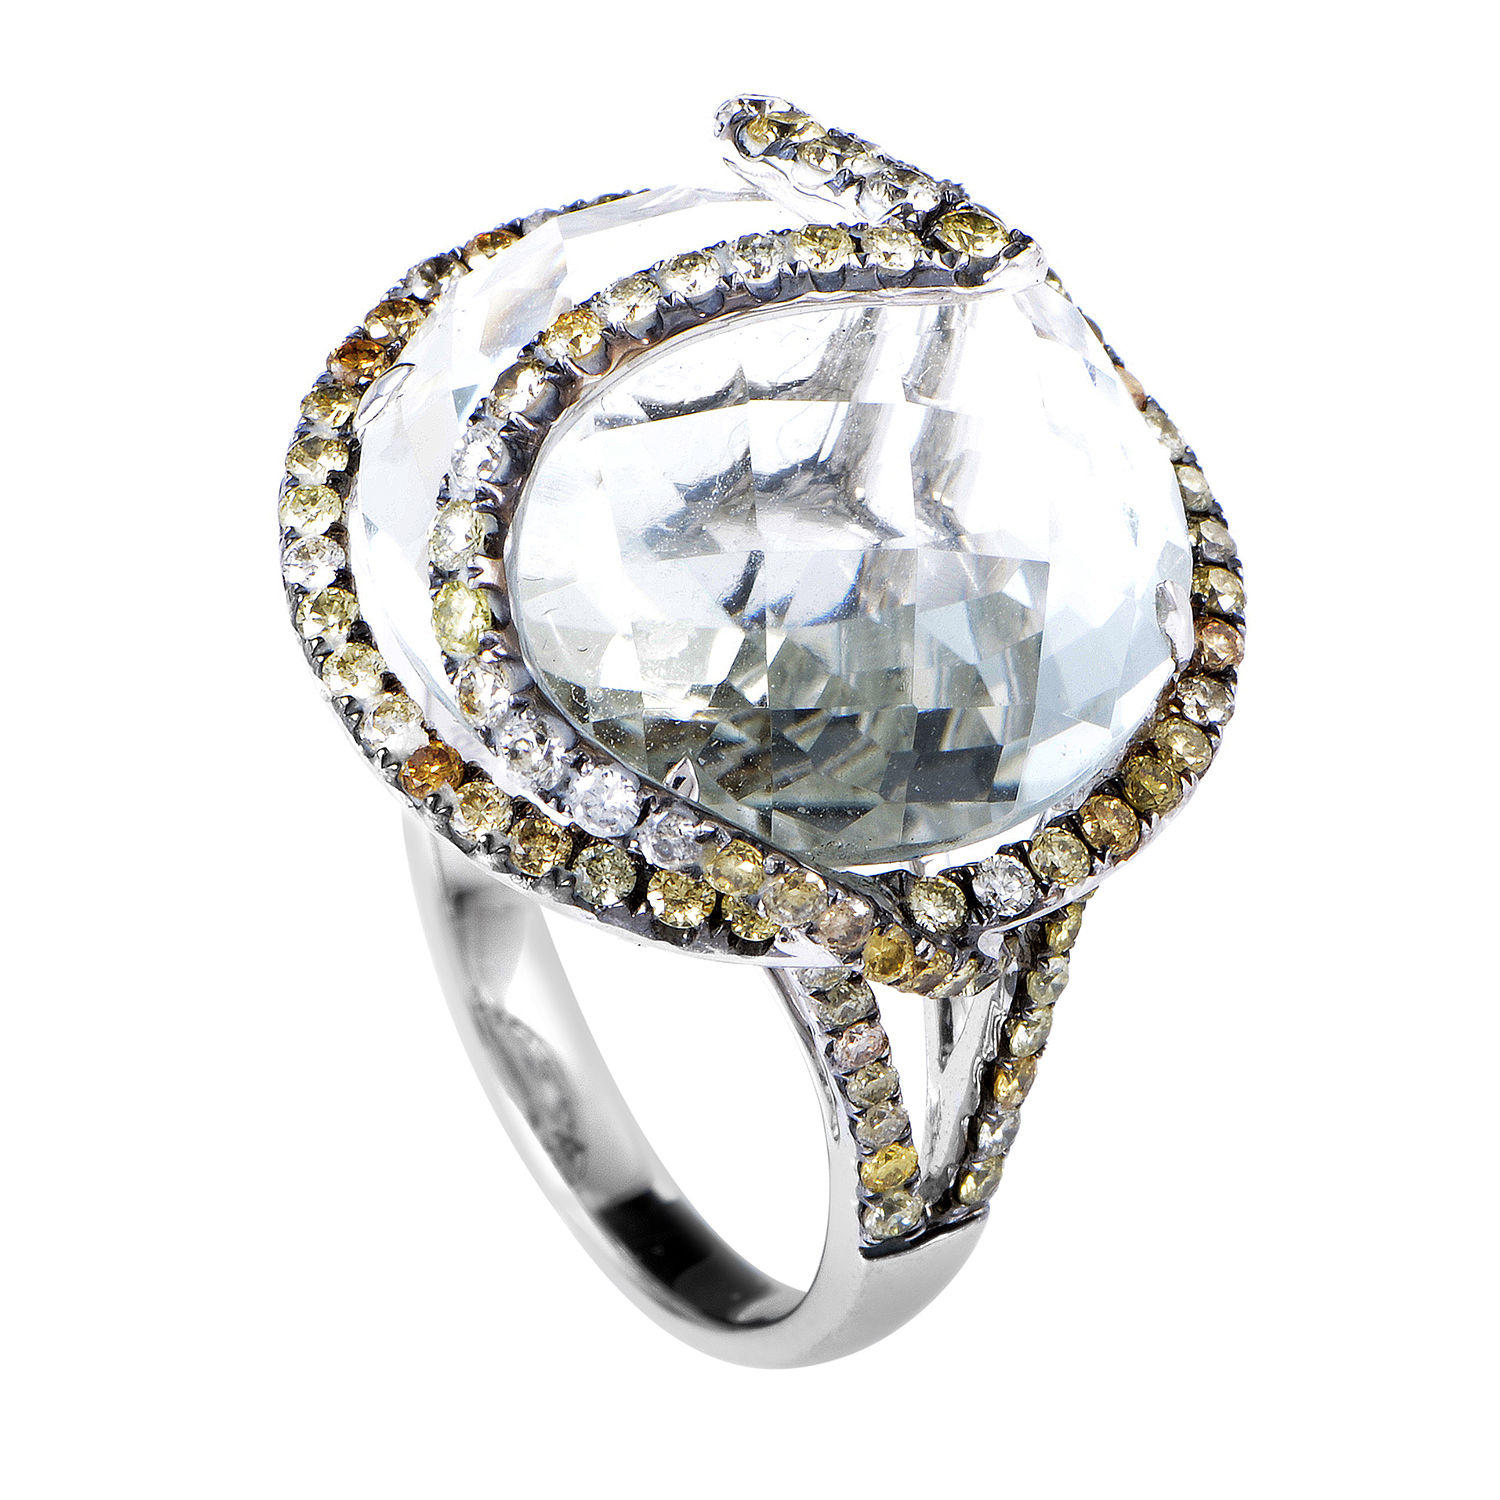 Women's 18K White Gold Diamond & Green Amethyst Ring YRP01-032614